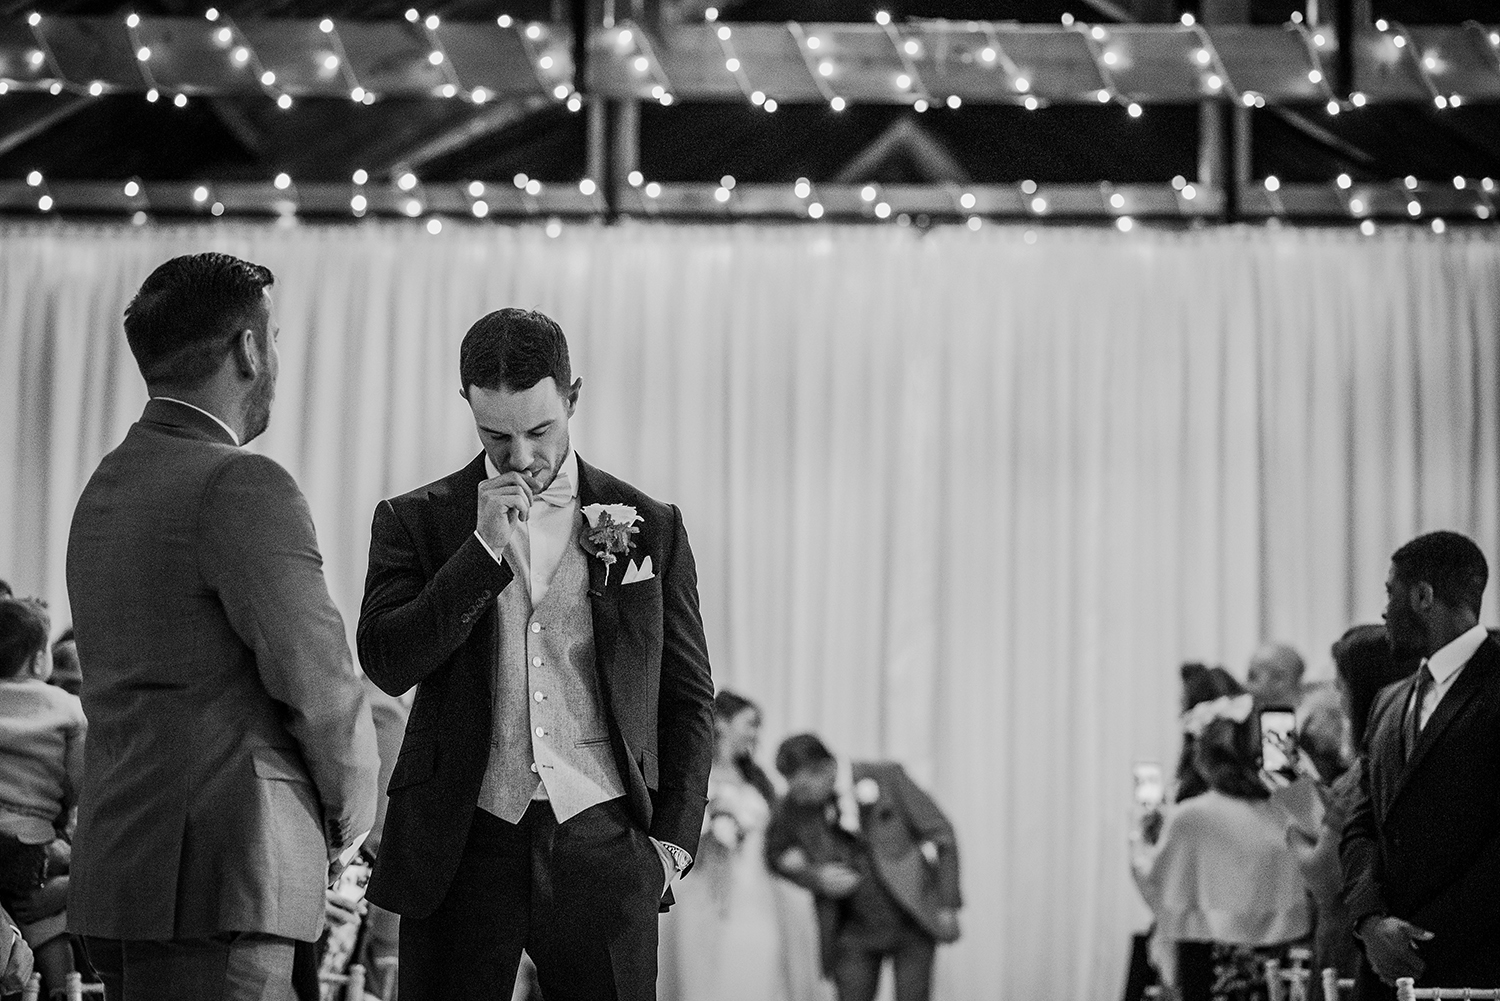 bw photo of nervous groom biting his thumbnail as the bride enters in the background